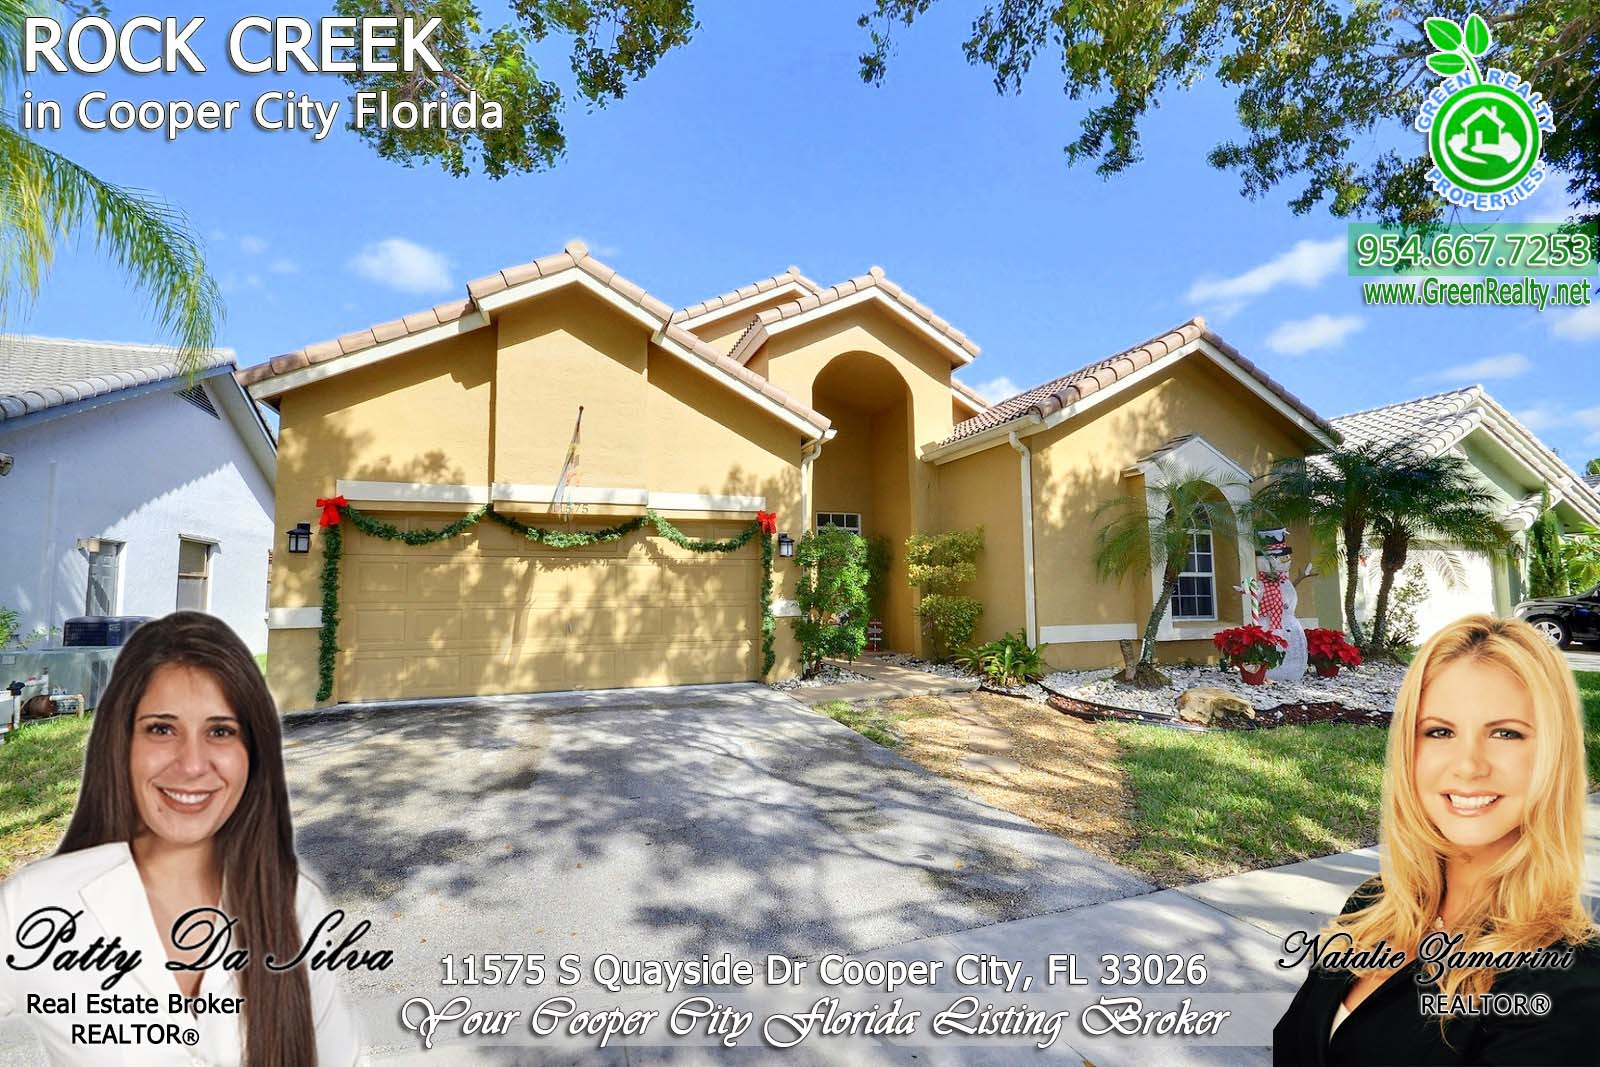 1 Rock Creek Cooper City Realtors